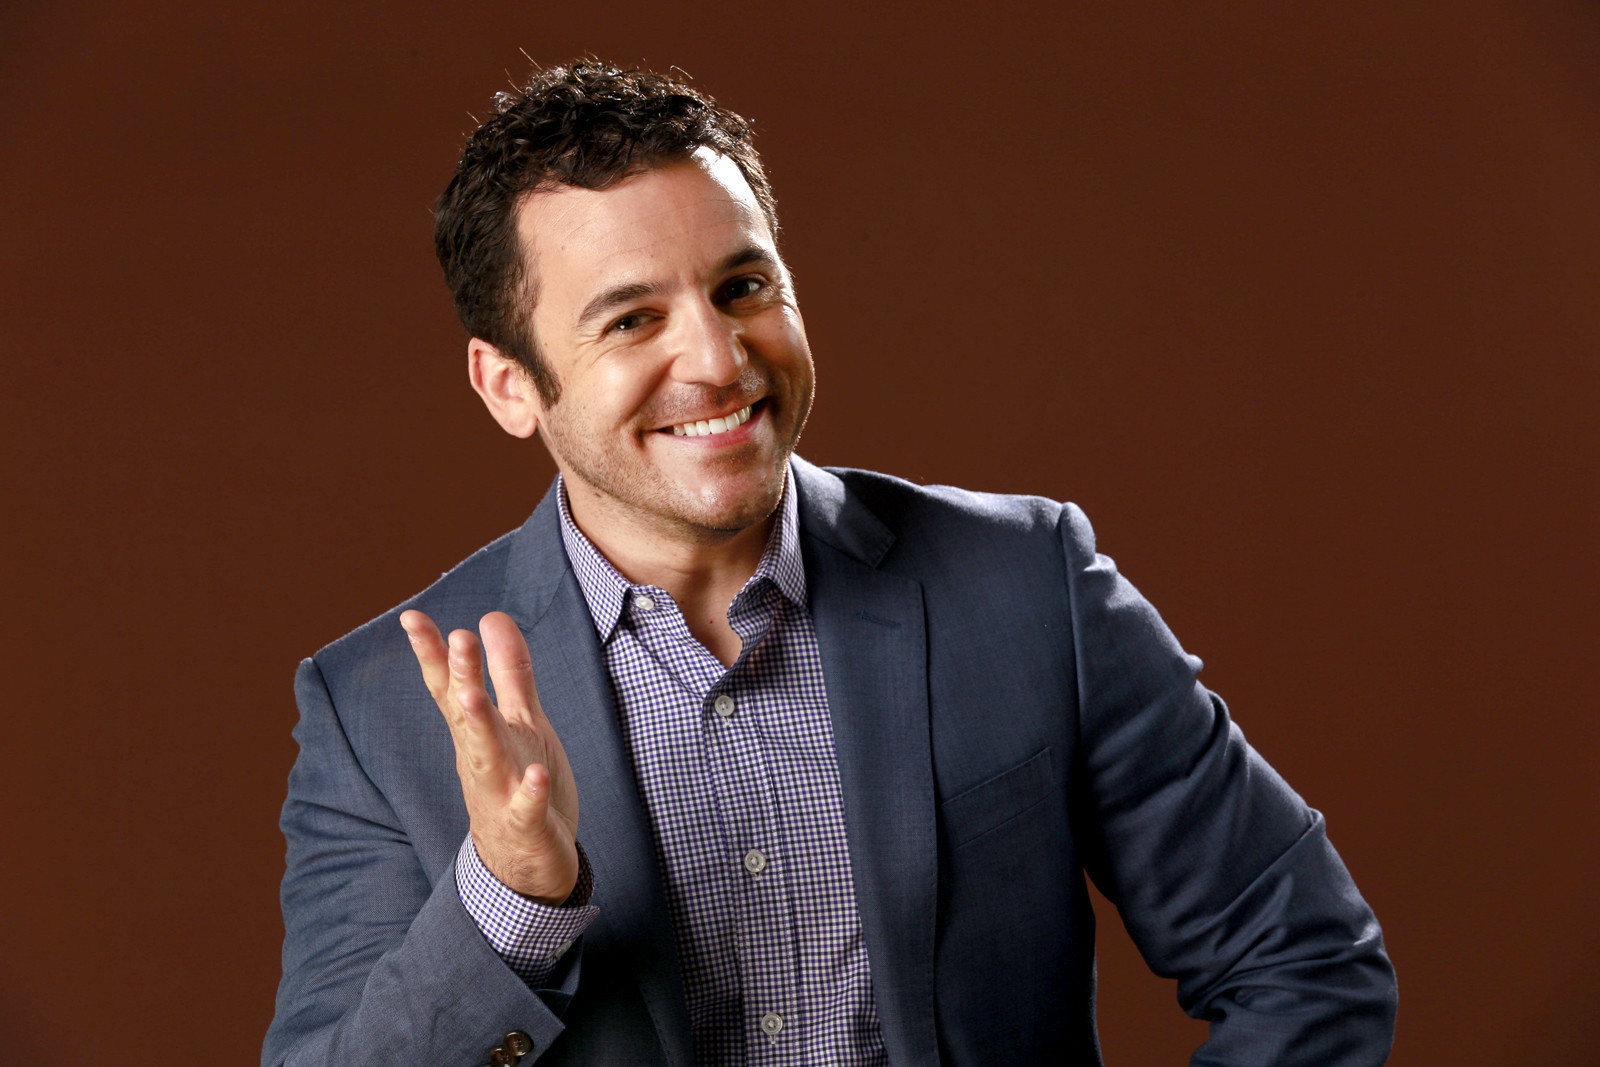 fred savage the wizardfred savage mole, fred savage the wizard, fred savage instagram, fred savage wife, fred savage movie, fred savage wikipedia, fred savage, fred savage net worth, fred savage brother, fred savage wiki, fred savage twitter, fred savage and danica mckellar, fred savage the wonder years, fred savage imdb, fred savage boy meets world, fred savage movies and tv shows, fred savage modern family, fred savage height, fred savage new tv show, fred savage family